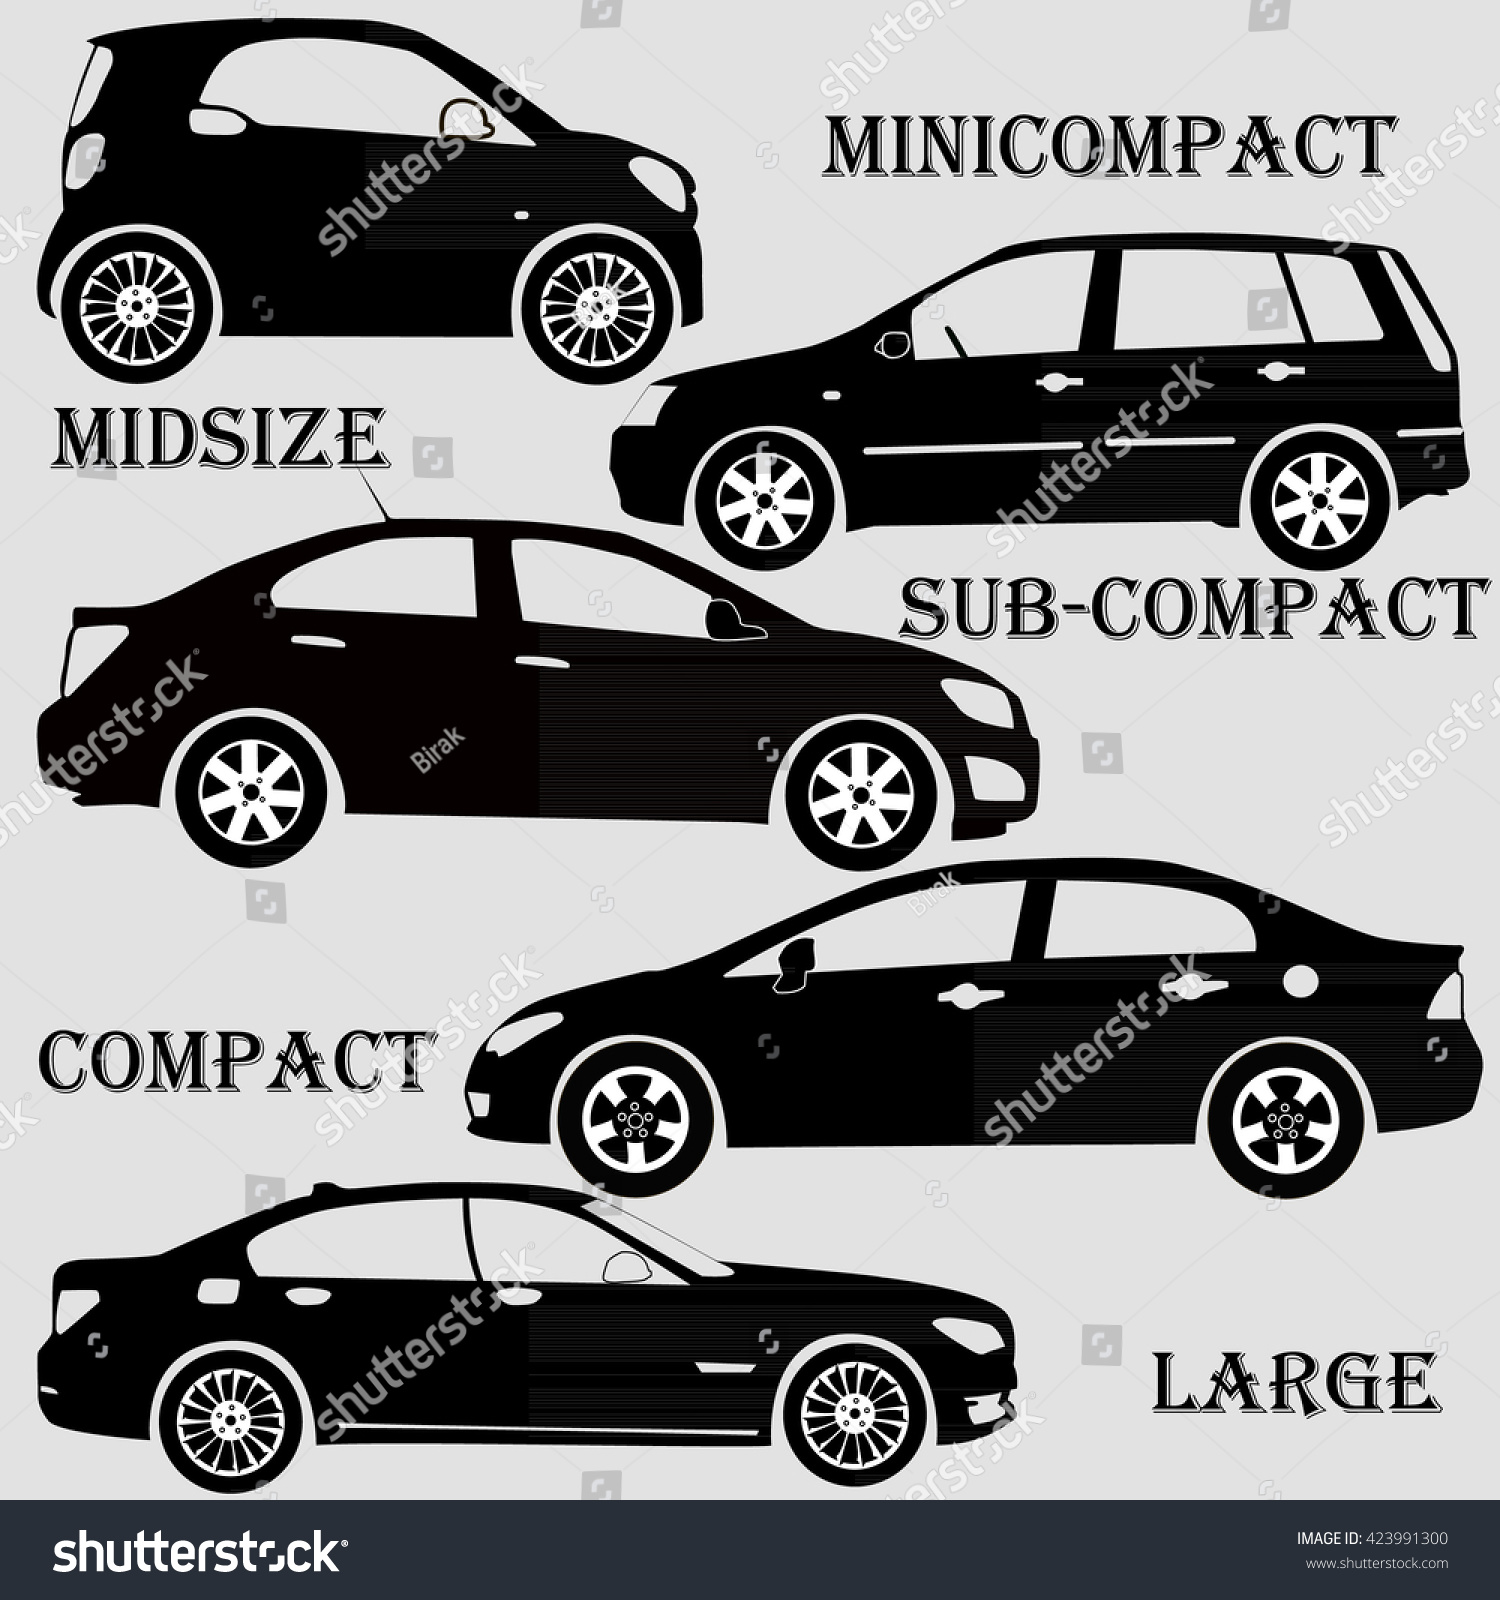 American Classification Cars Types Stock Vector 423991300 - Shutterstock